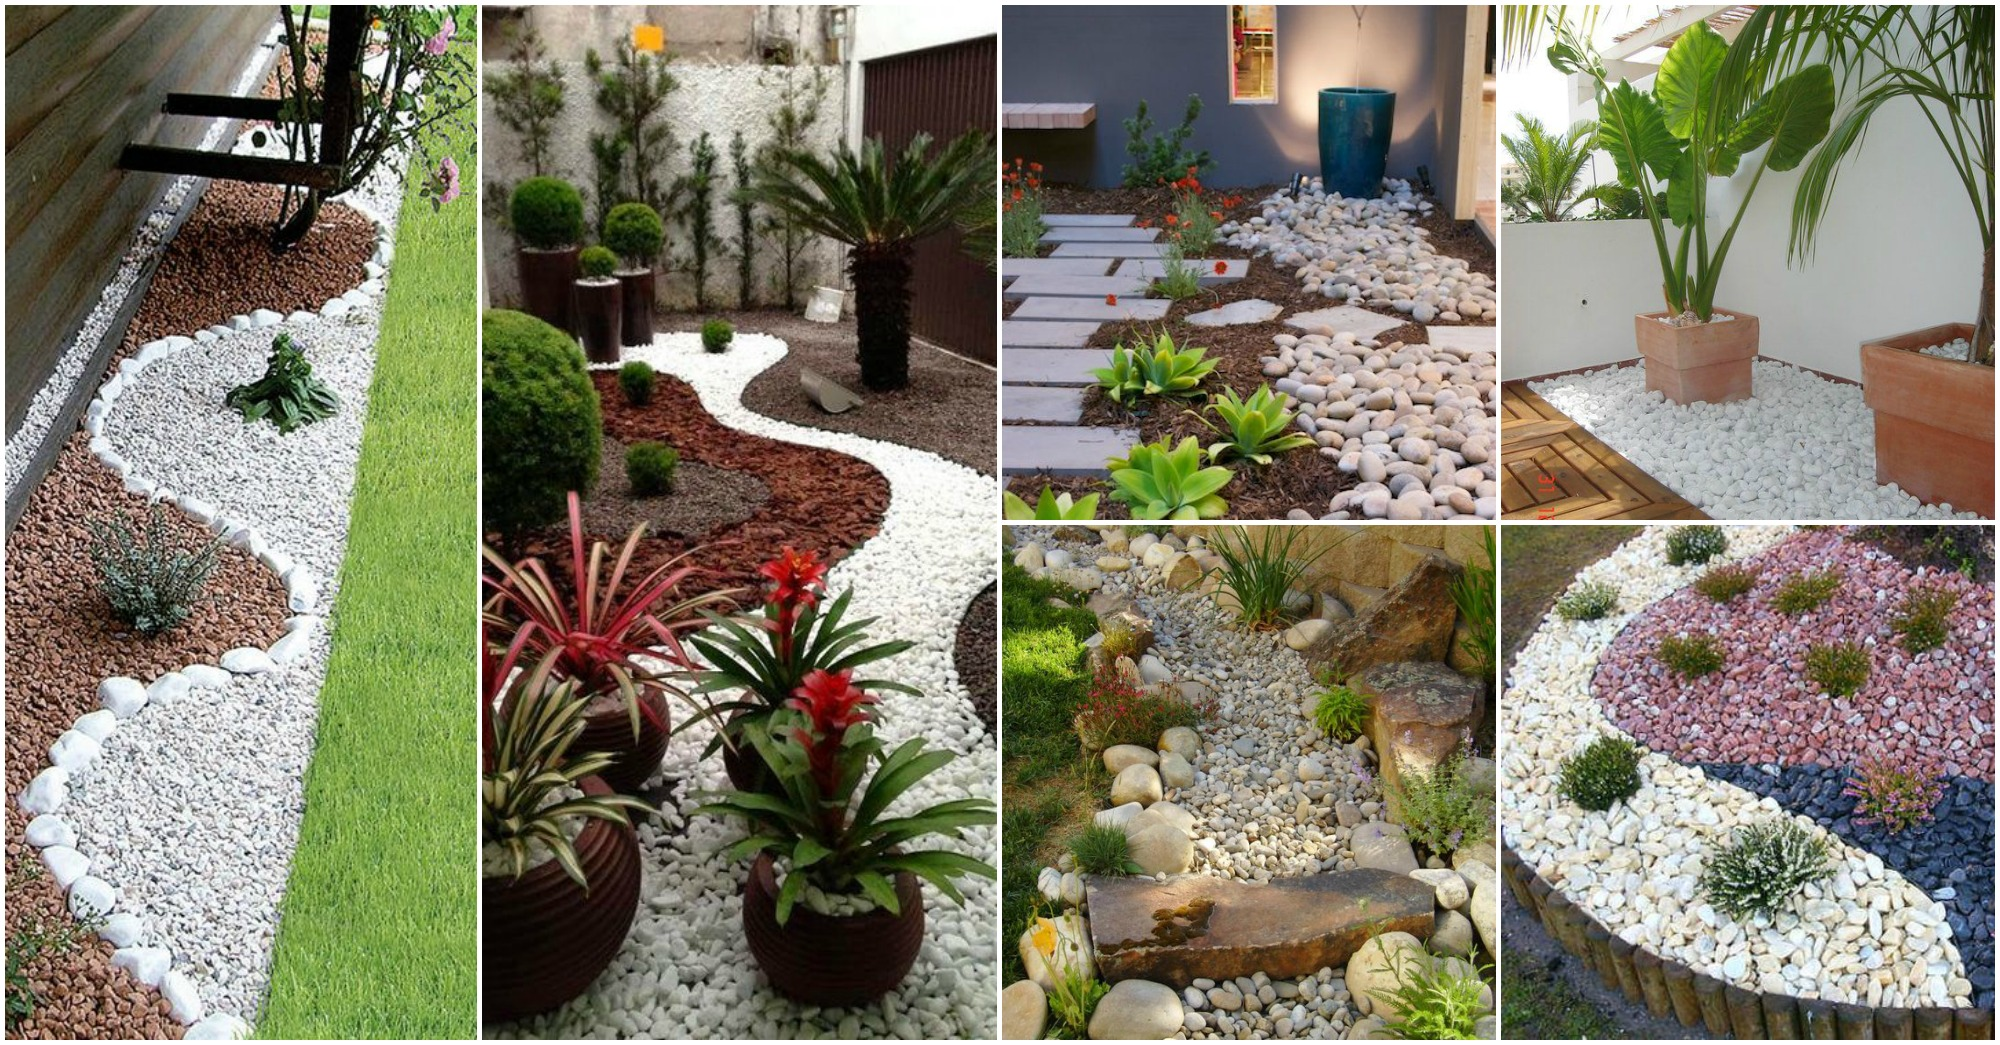 20 hermosas ideas para decorar tu jard n con piedras for Ideas para decorar jardines